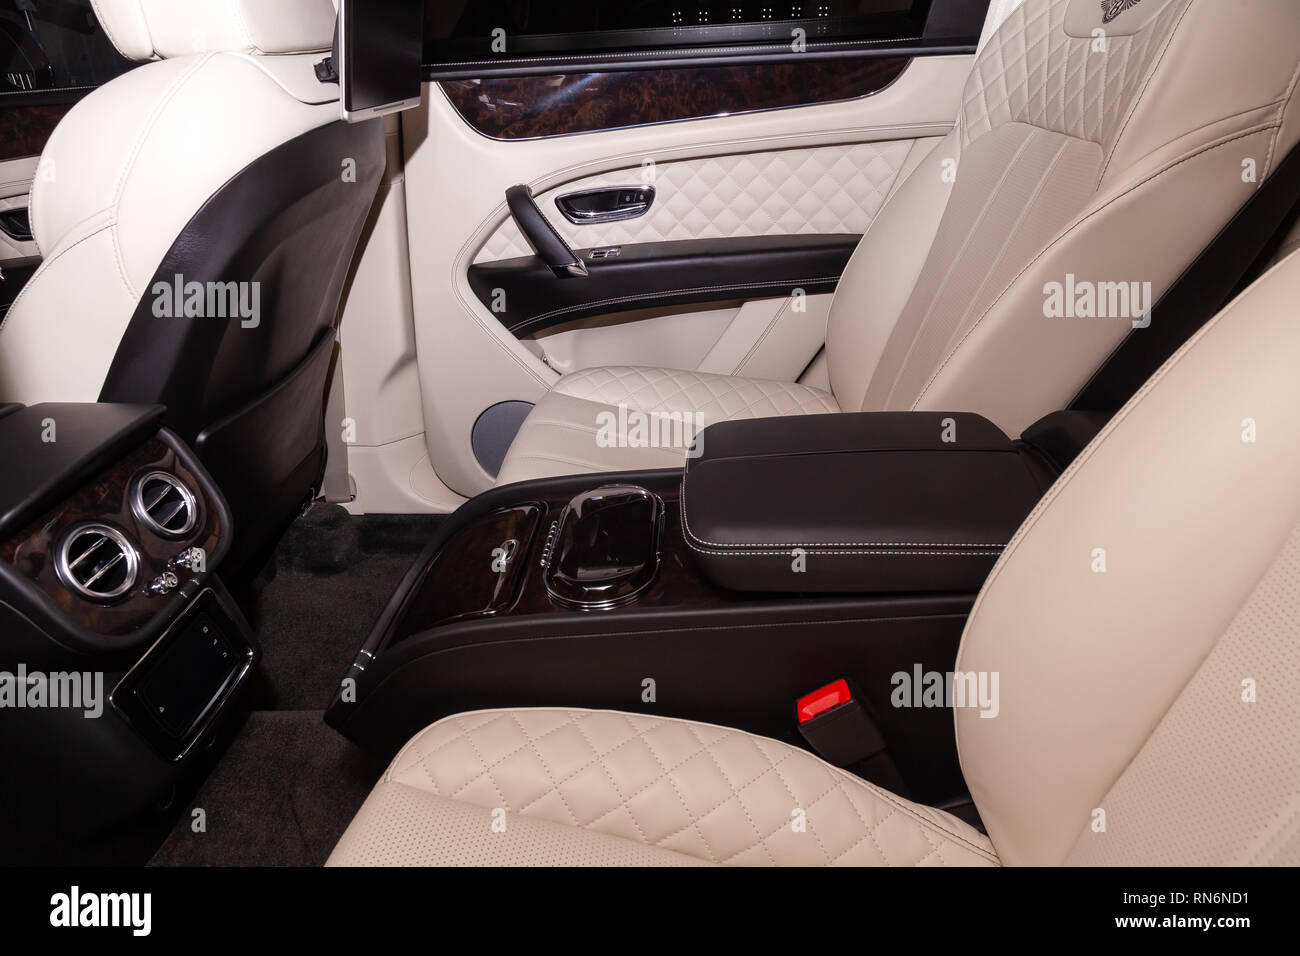 Novosibirsk Russia 08 01 18 Interior View With Central Console On Rear Seat Of Luxury Very Expensive New Black Bentley Bentayga Car Stands In The Stock Photo Alamy